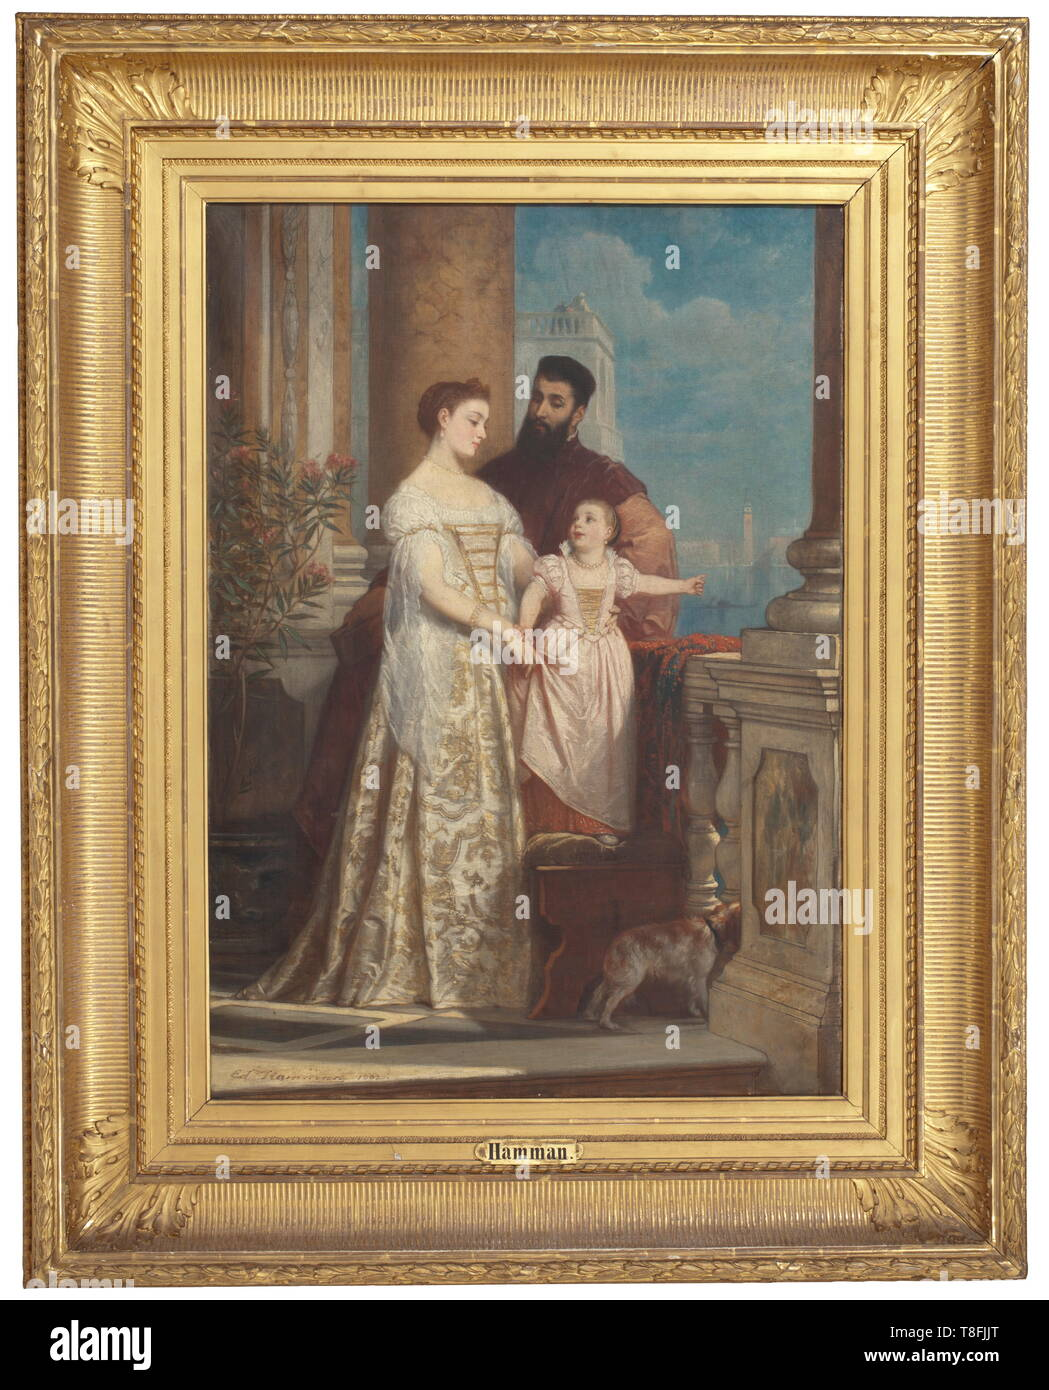 Edouard Jean Conrad Hamman (1819 - 1888) - a Venetian patrician family on a balcony Oil on canvas. Signed and dated on the lower left 'Ed. Hamman 1862'. Patrician family on a balcony, in the background San Giorgio Maggiore, Venice. In a magnificent gilt plaster frame (small damages). On the reverse side two adhesive inventory labels 'ON' (remnants) for the Grand Duchess Olga Nikolaevna of Russia and one inventory label 'P.E. & O.v.W. gemeinschaftlich' for the princesses Elsa and Olga von Württemberg. Dimensions of the painting approximately 85 x , Additional-Rights-Clearance-Info-Not-Available - Stock Image